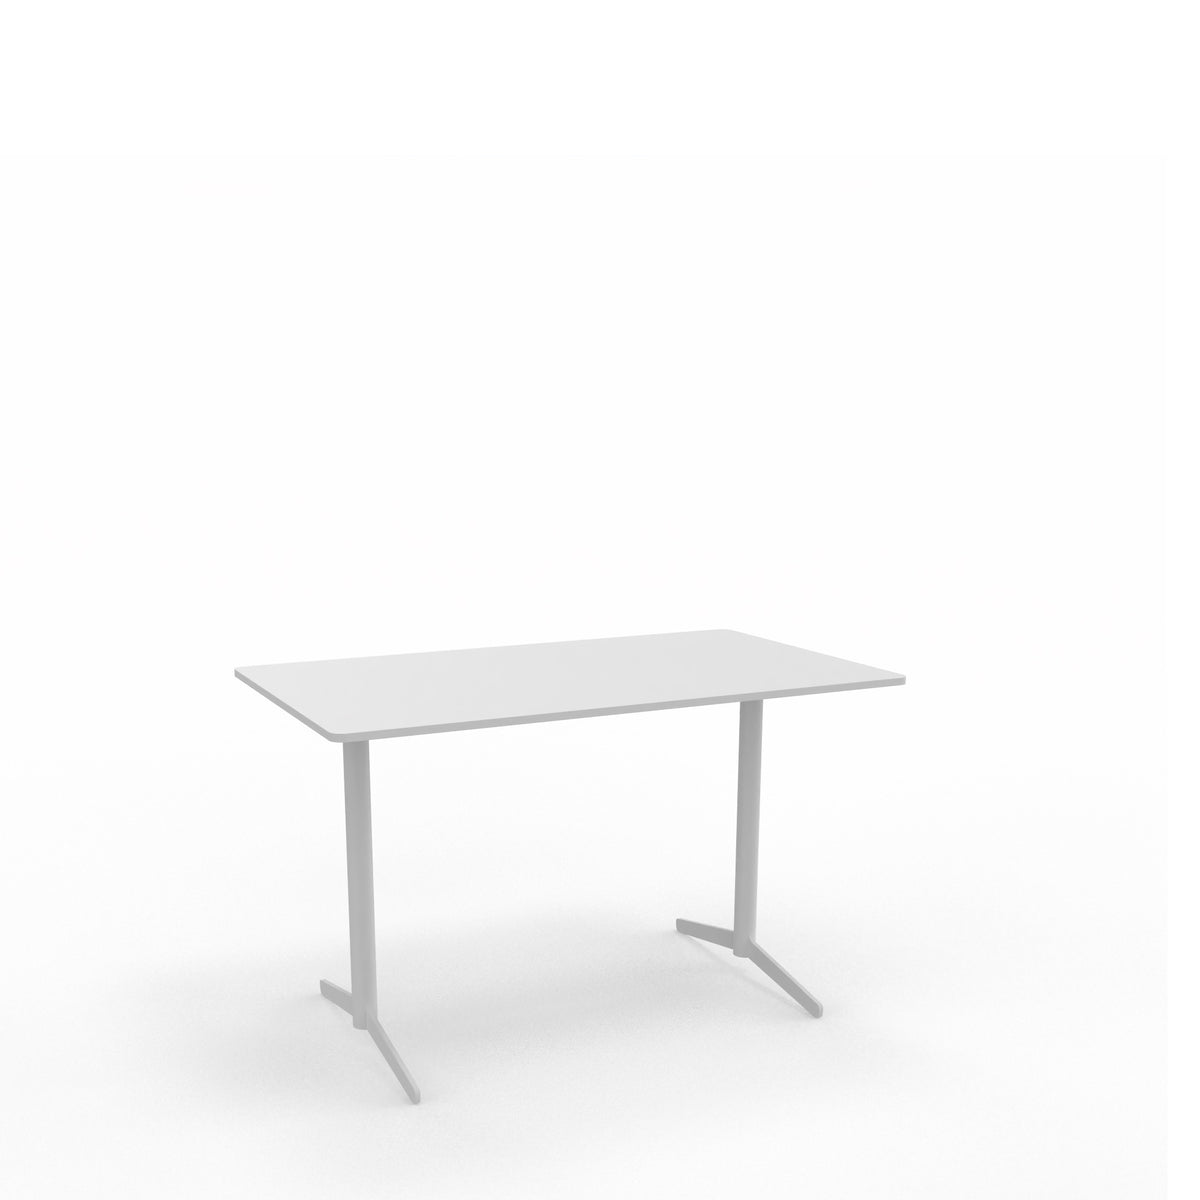 Edsbyn Office Feather Table White with White Base